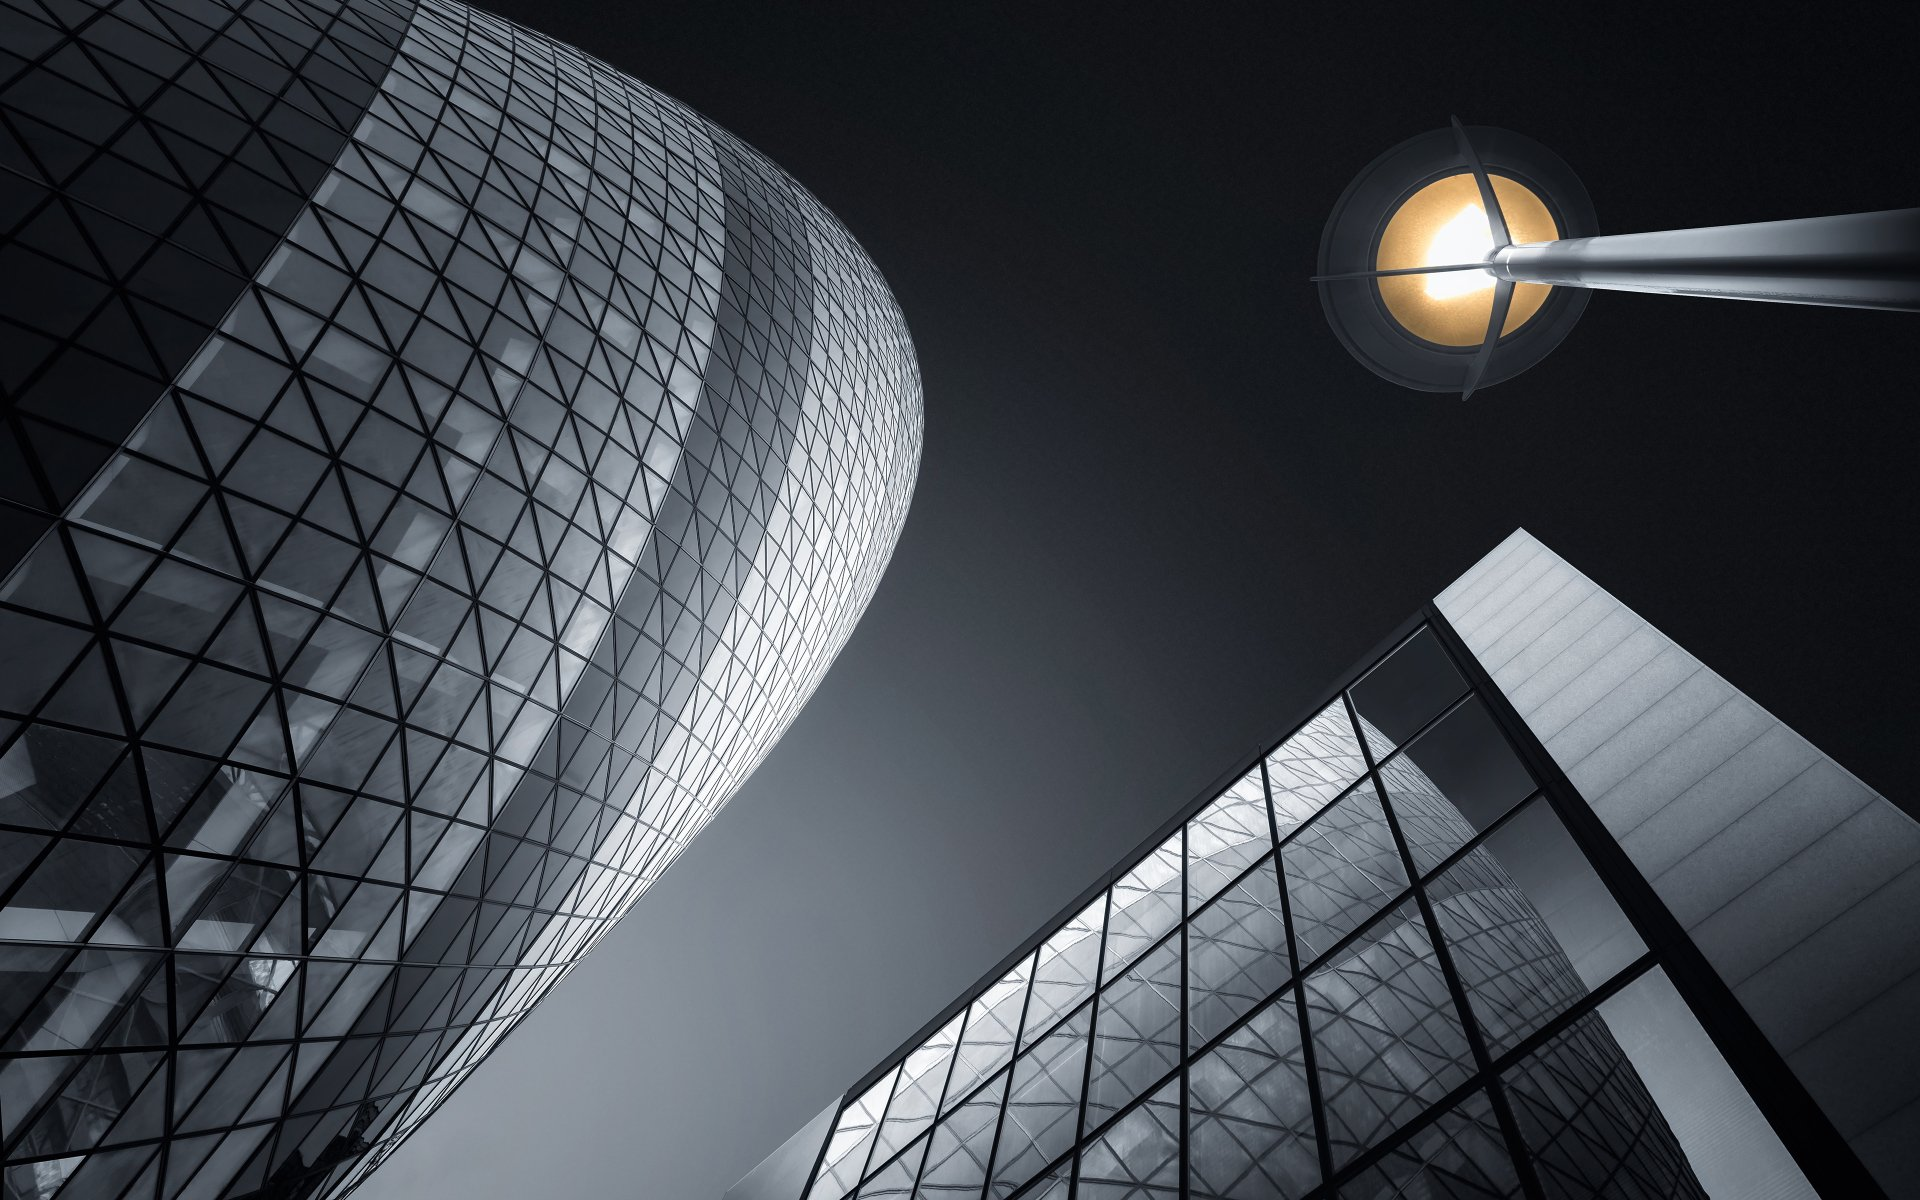 Man Made - Architecture  Wallpaper